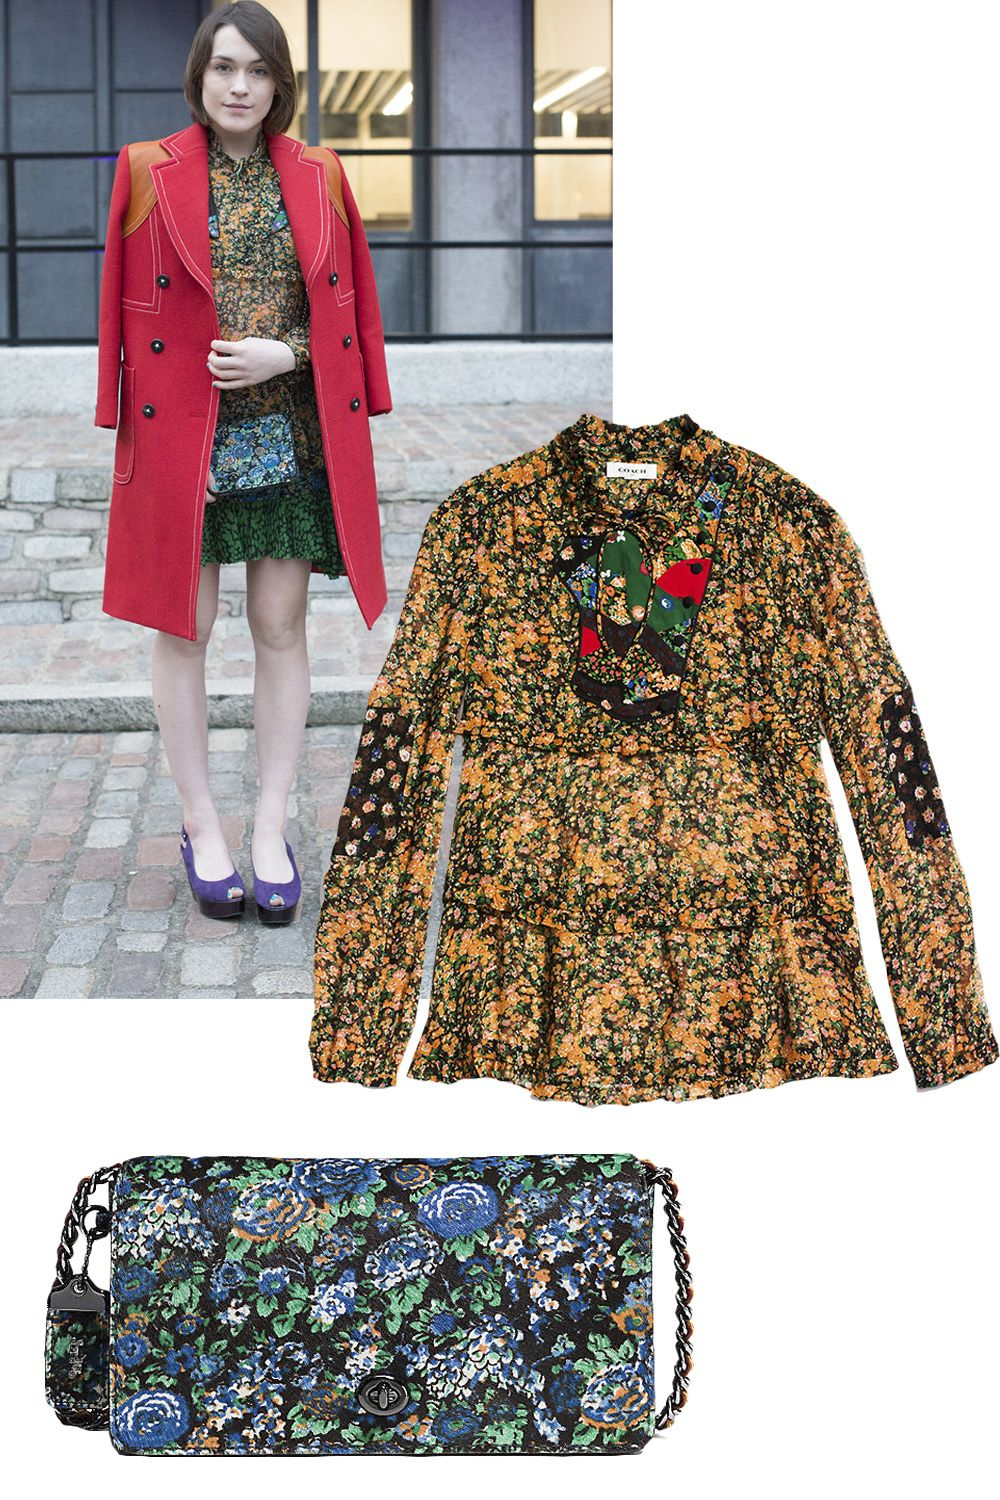 """<p><strong>Who: </strong>Ella Catliff </p><p><strong>Style Lesson: </strong>Juxtapose bright buds, like a floral blouse with a contrasting floral purse.<br> </p><p><em>Coach <em>1941</em> Side Opening Blouse With Applique, $450, <a rel=""""noskim"""" href=""""http://www.coach.com/coach-designer-tops-side-opening-blouse-with-applique/86681.html?dwvar_color=YEO&CID=D_B_HBZ_10370"""" target=""""_blank"""">coach.com</a>; Coach <em>1941</em> Dinky Crossbody in Printed Haircalf, $595, <a rel=""""noskim"""" href=""""http://www.coach.com/coach-designer-crossbody-dinky-crossbody-in-printed-haircalf/38209.html?dwvar_color=DKFG5&CID=D_B_HBZ_10340"""" target=""""_blank"""">coach.com</a></em></p>"""